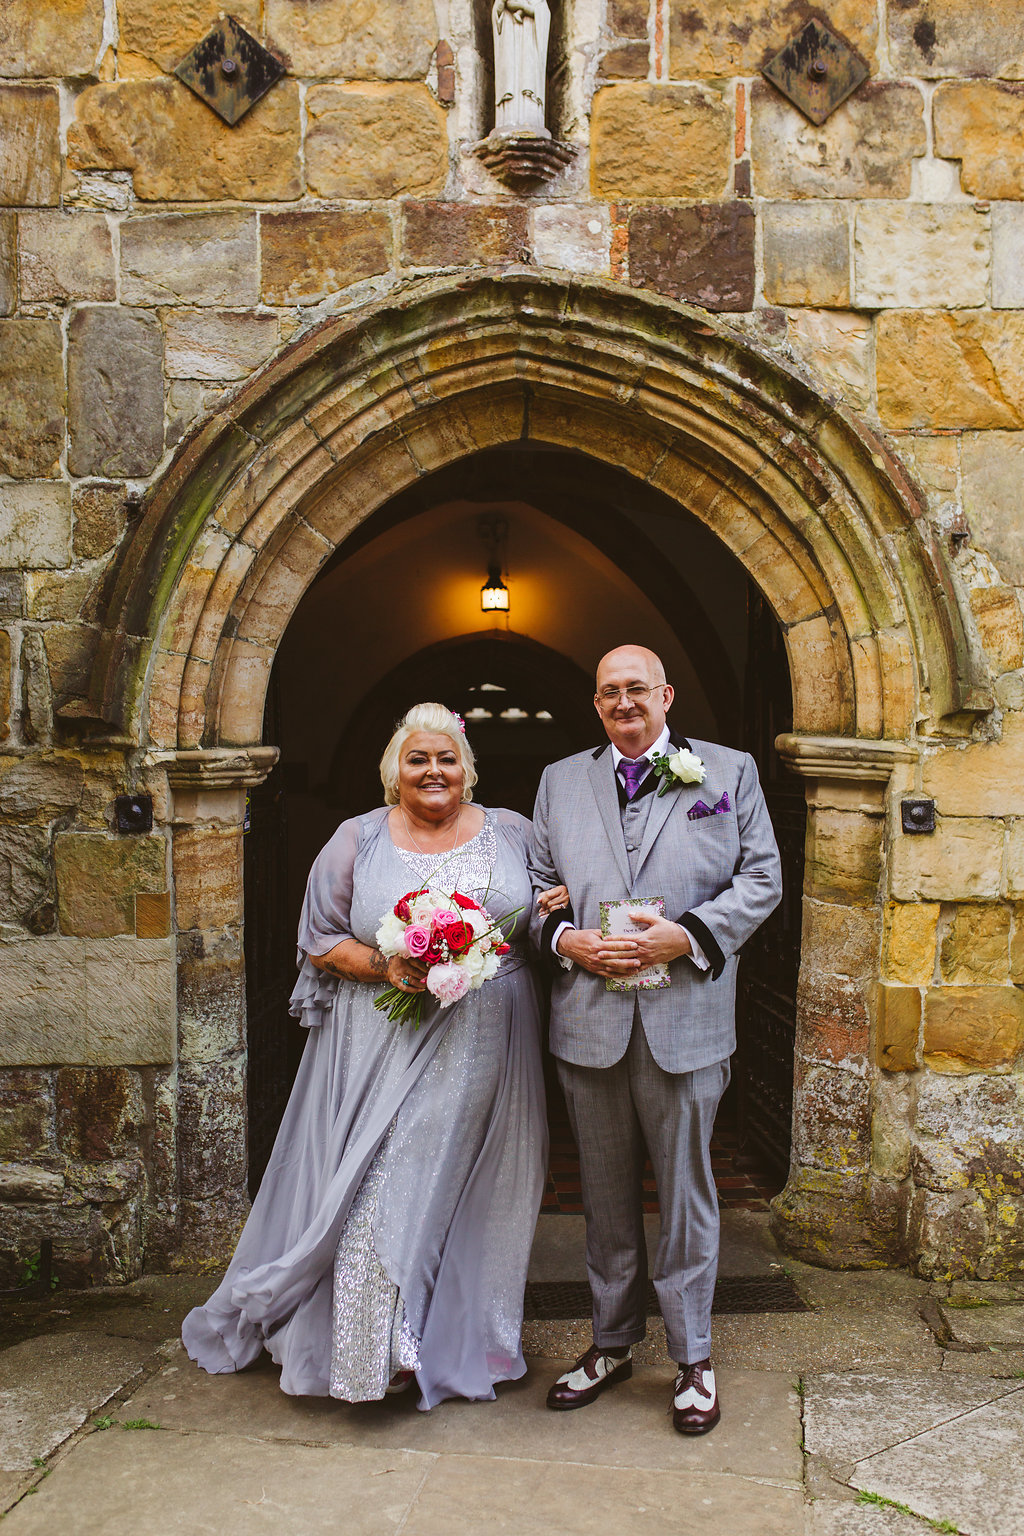 KarenandDave'sWeddingbyClareTam-ImPhotography-1167